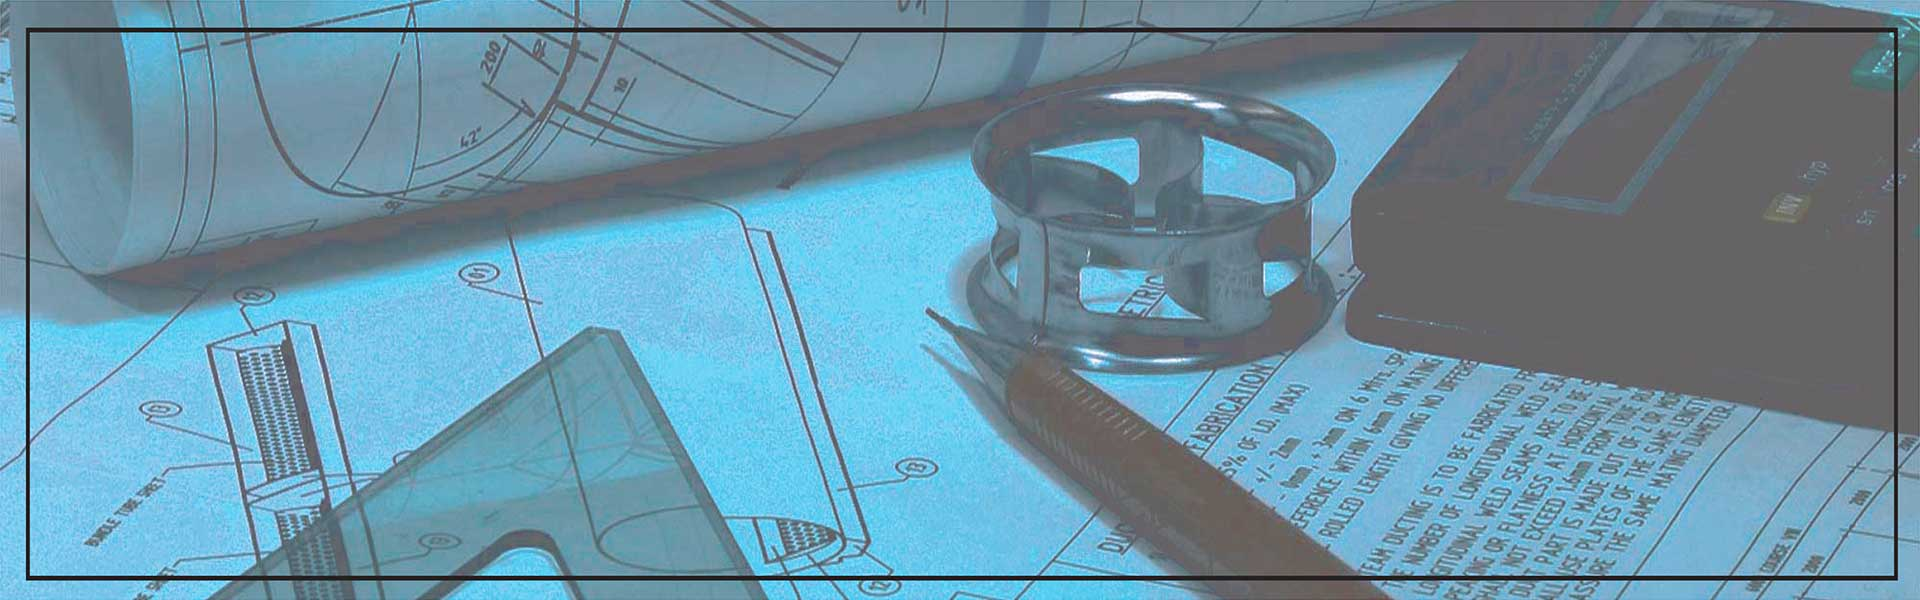 Engineering Design and Analysis Services